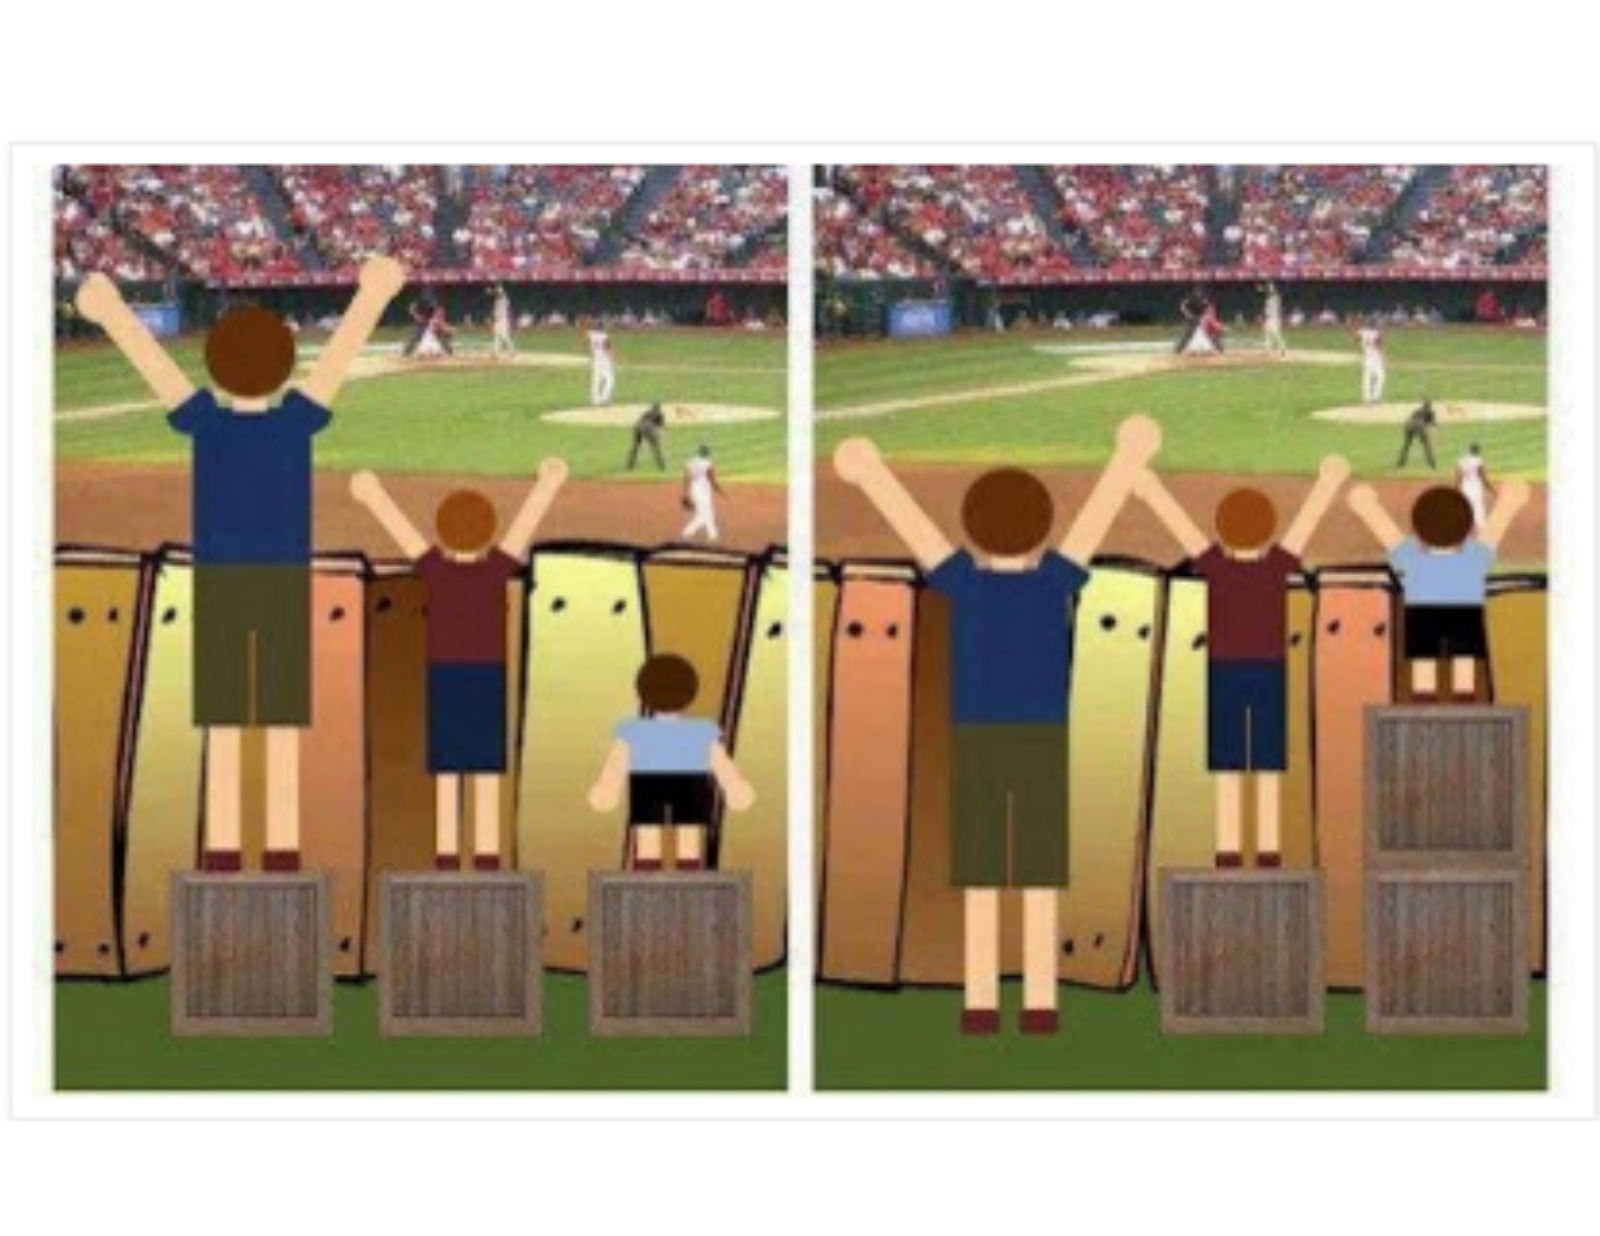 visual example of equitable treatment with viewing a baseball game